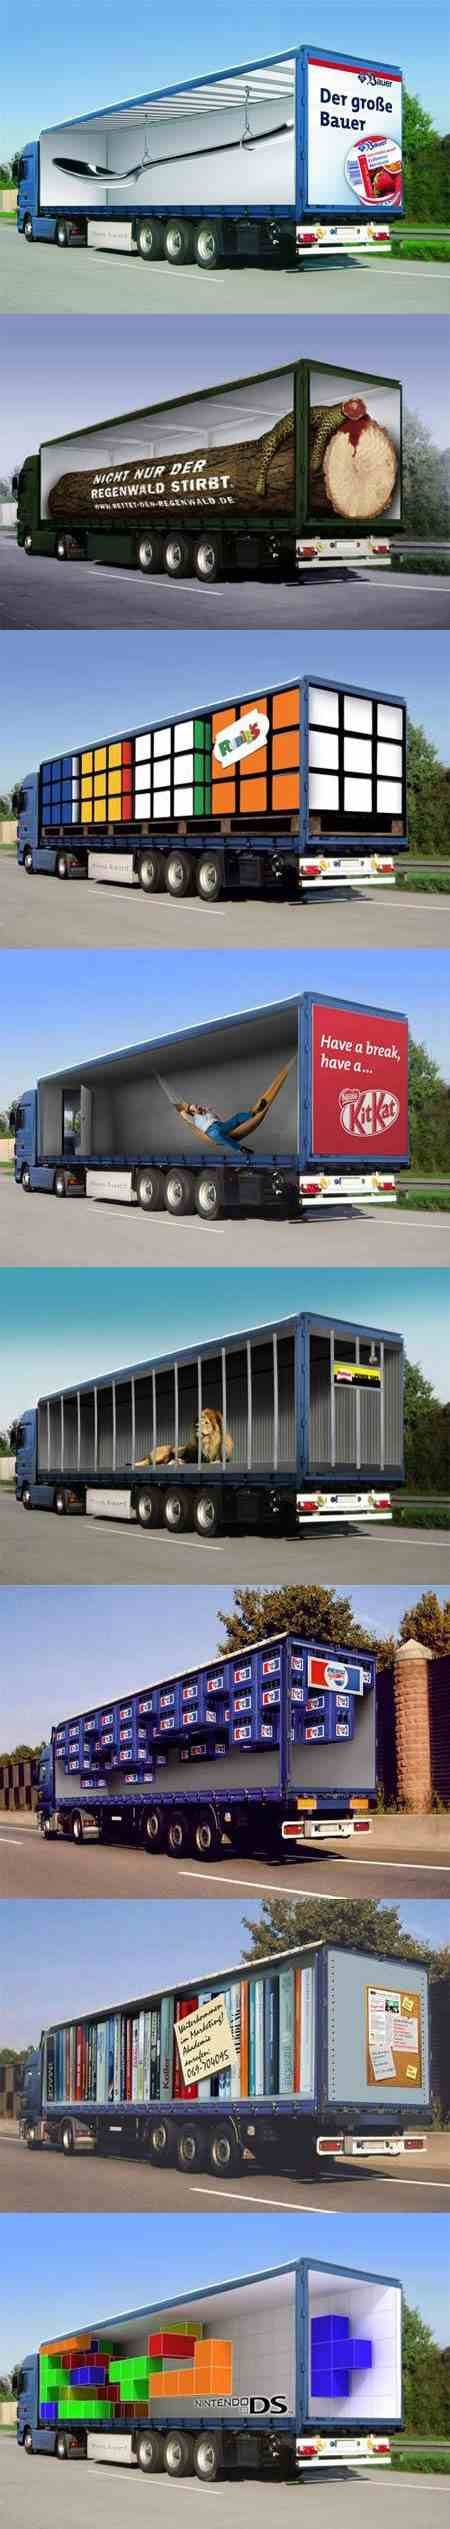 Fantastic Truck Advertising | Creation News | Scoop.it